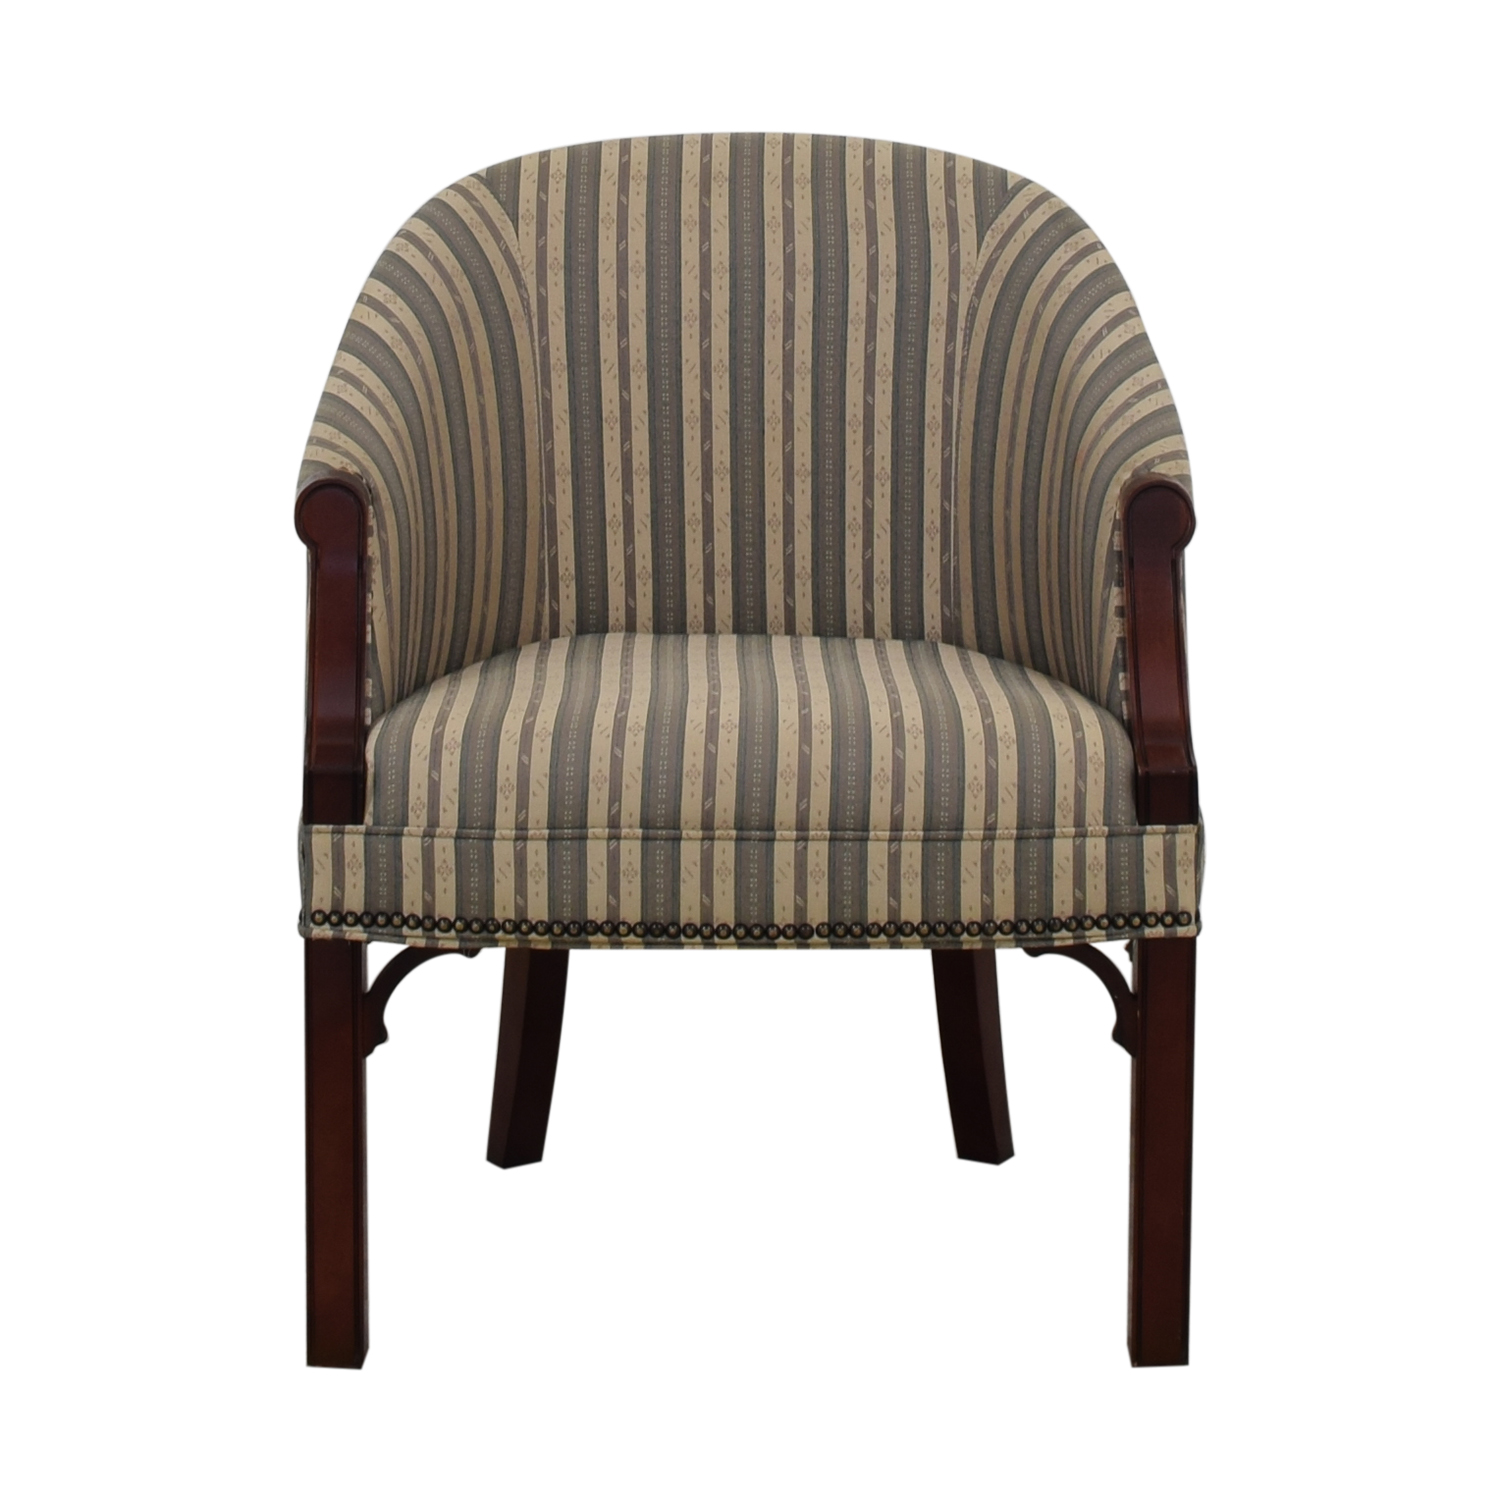 buy Kimball Independence Newcastle Striped Chair Kimball Accent Chairs